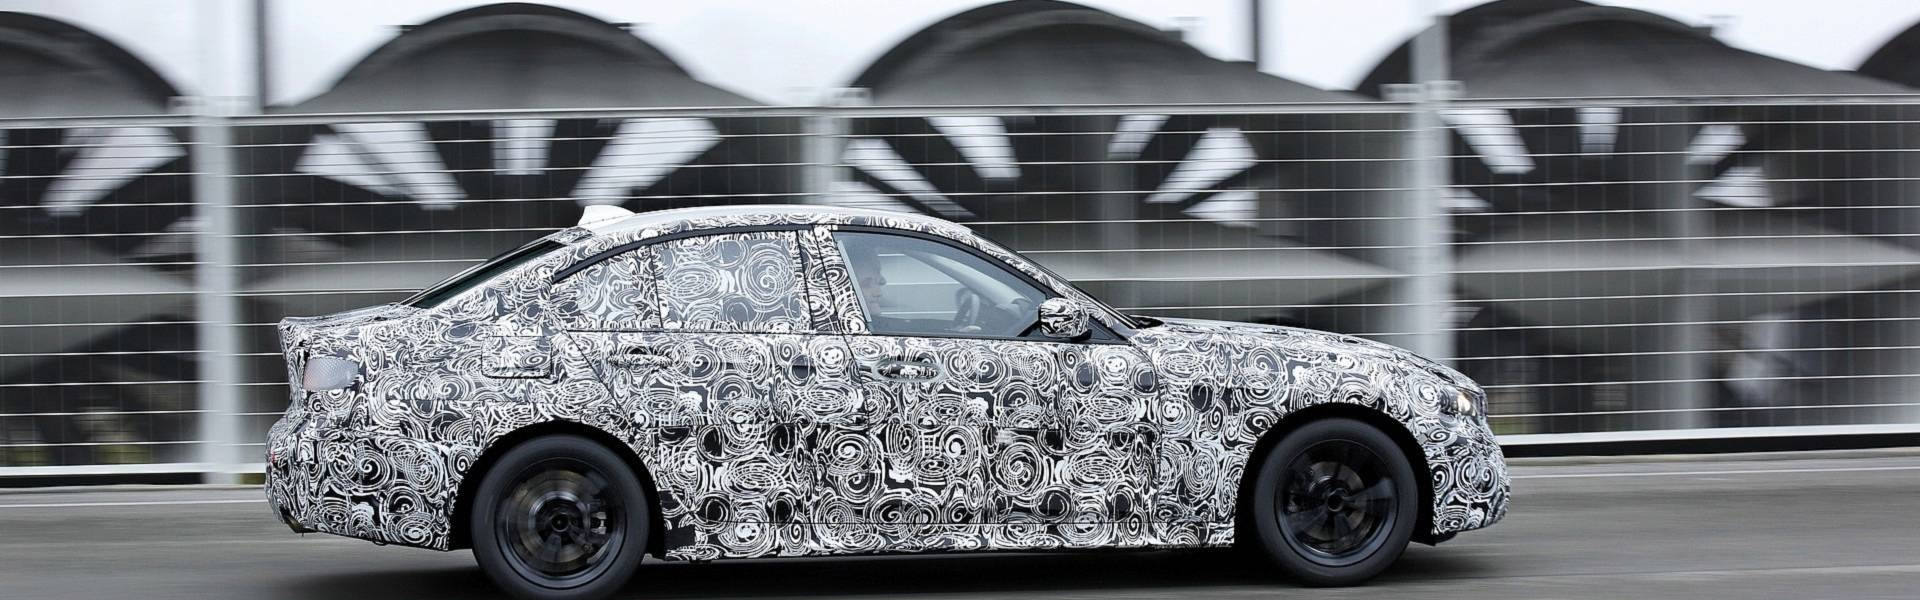 2019-bmw-3-series-teaser (6).jpg